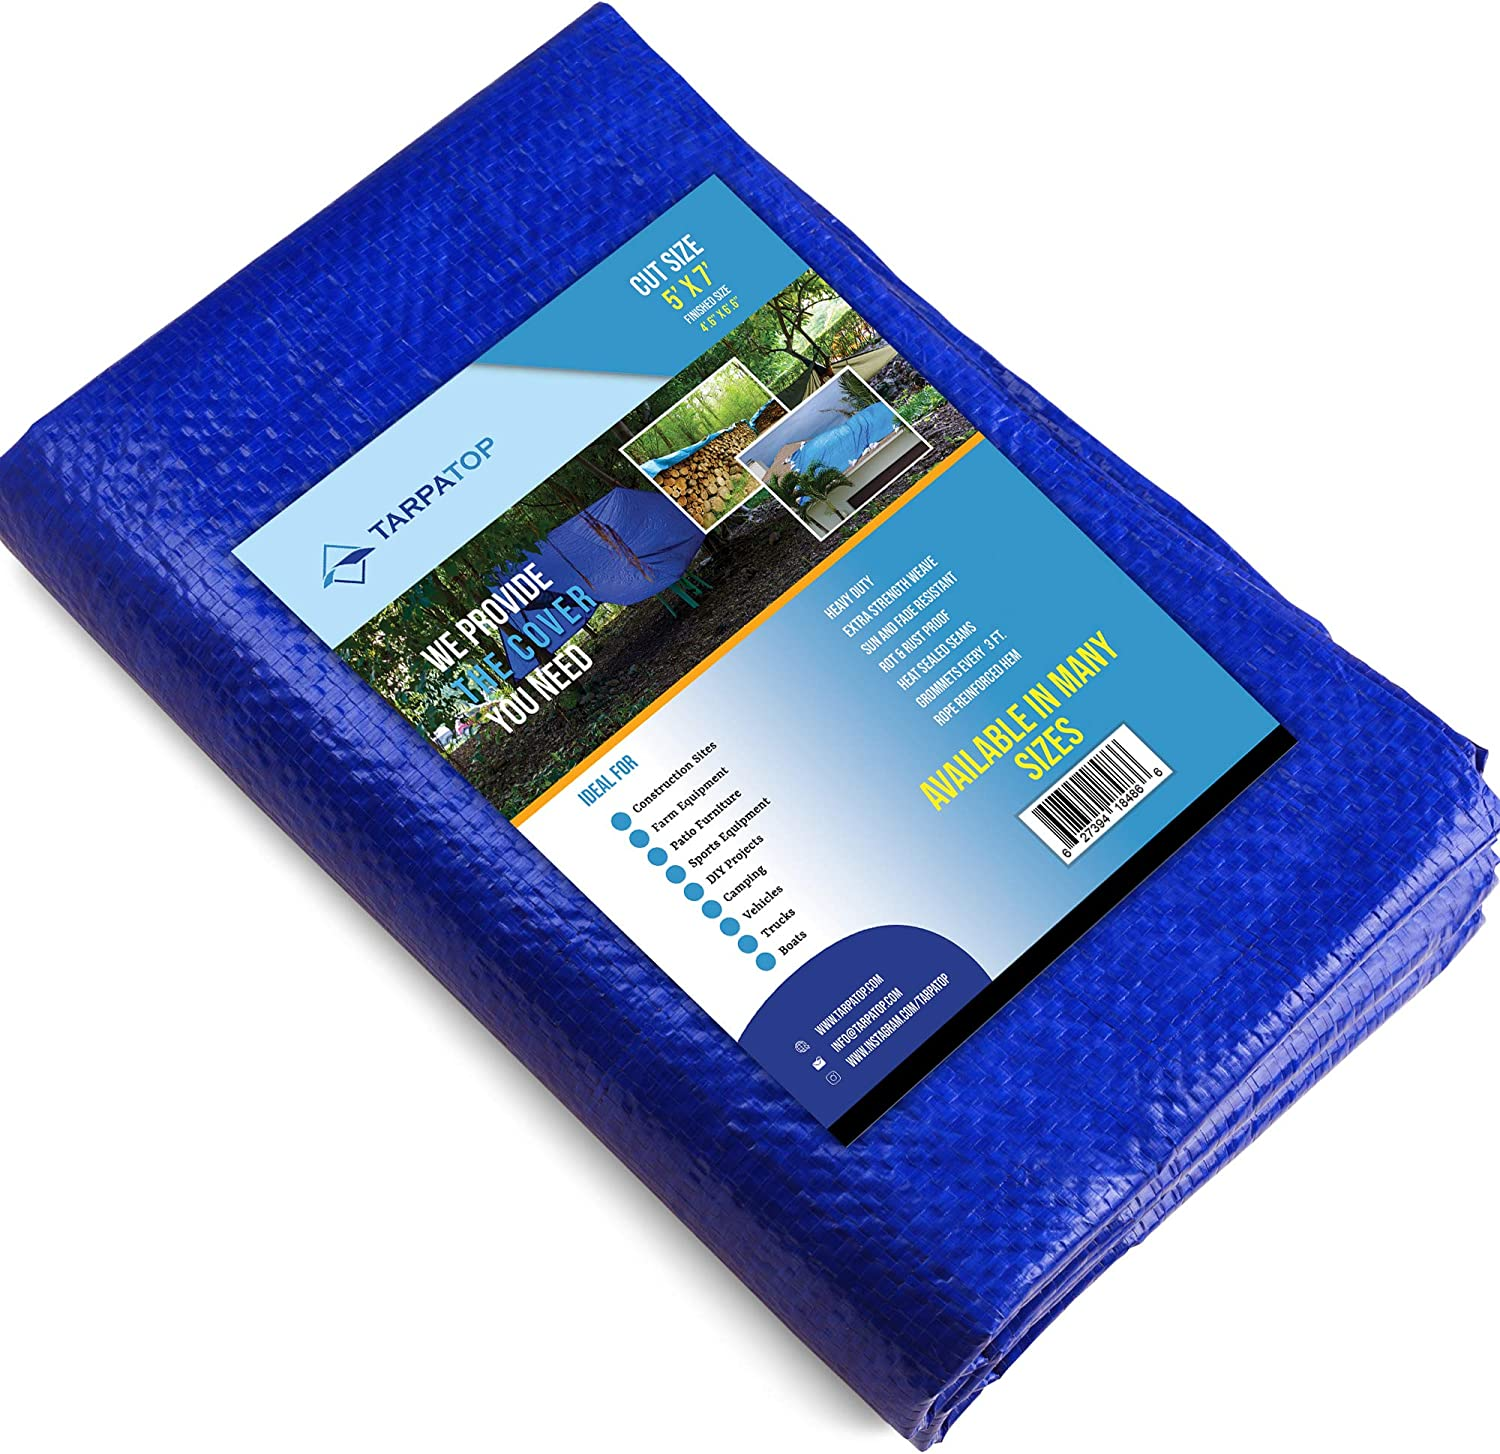 5x7 Waterproof Multi-Purpose Poly Tarp – Blue Tarpaulin Protector for Cars, Boats, Construction Contractors, Campers, and Emergency Shelter. Rot, Rust and UV Resistant Protection Sheet